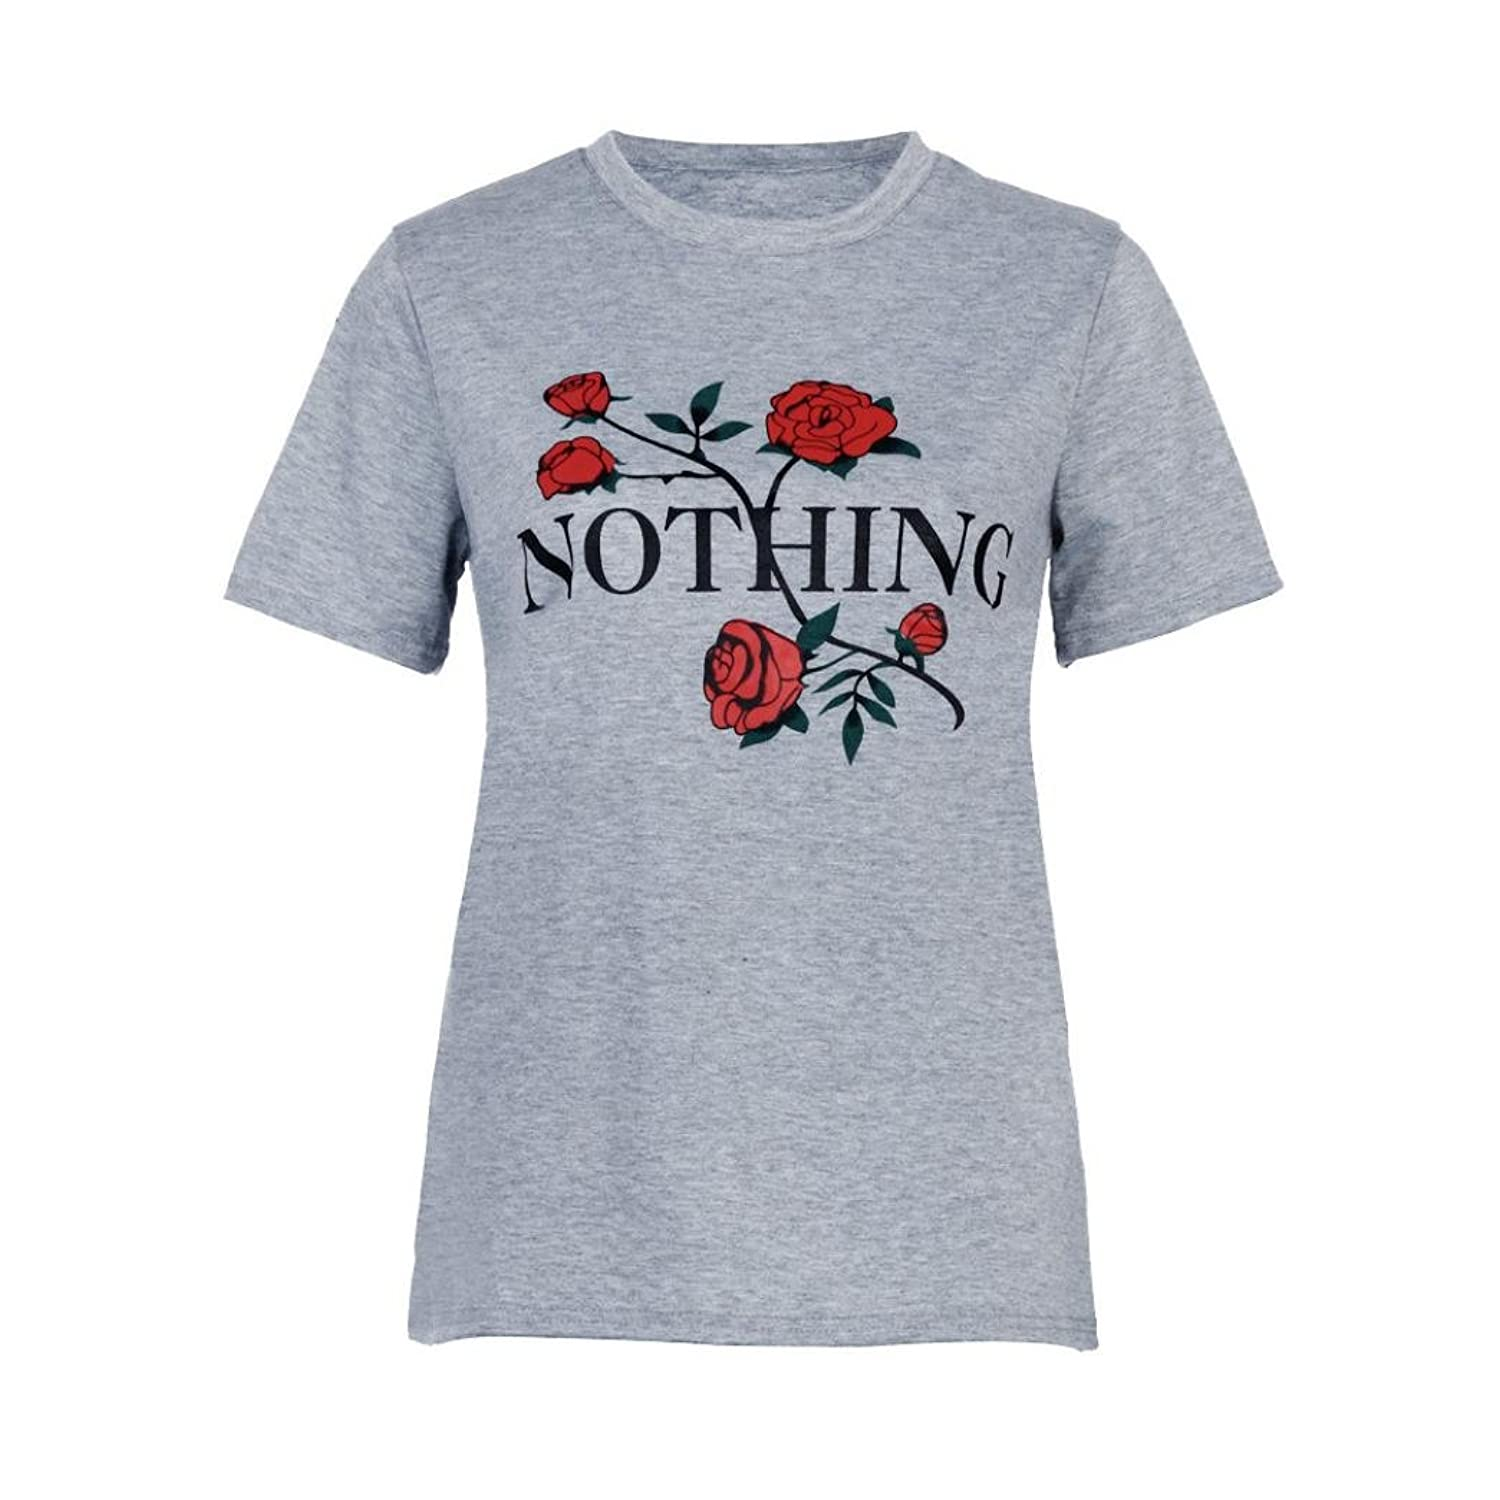 Amazon.com: DondPO Women Nothing Rose Printing Short Sleeve T-Shirt Yoga Tops Casual Blouse Summer Clothes: Clothing